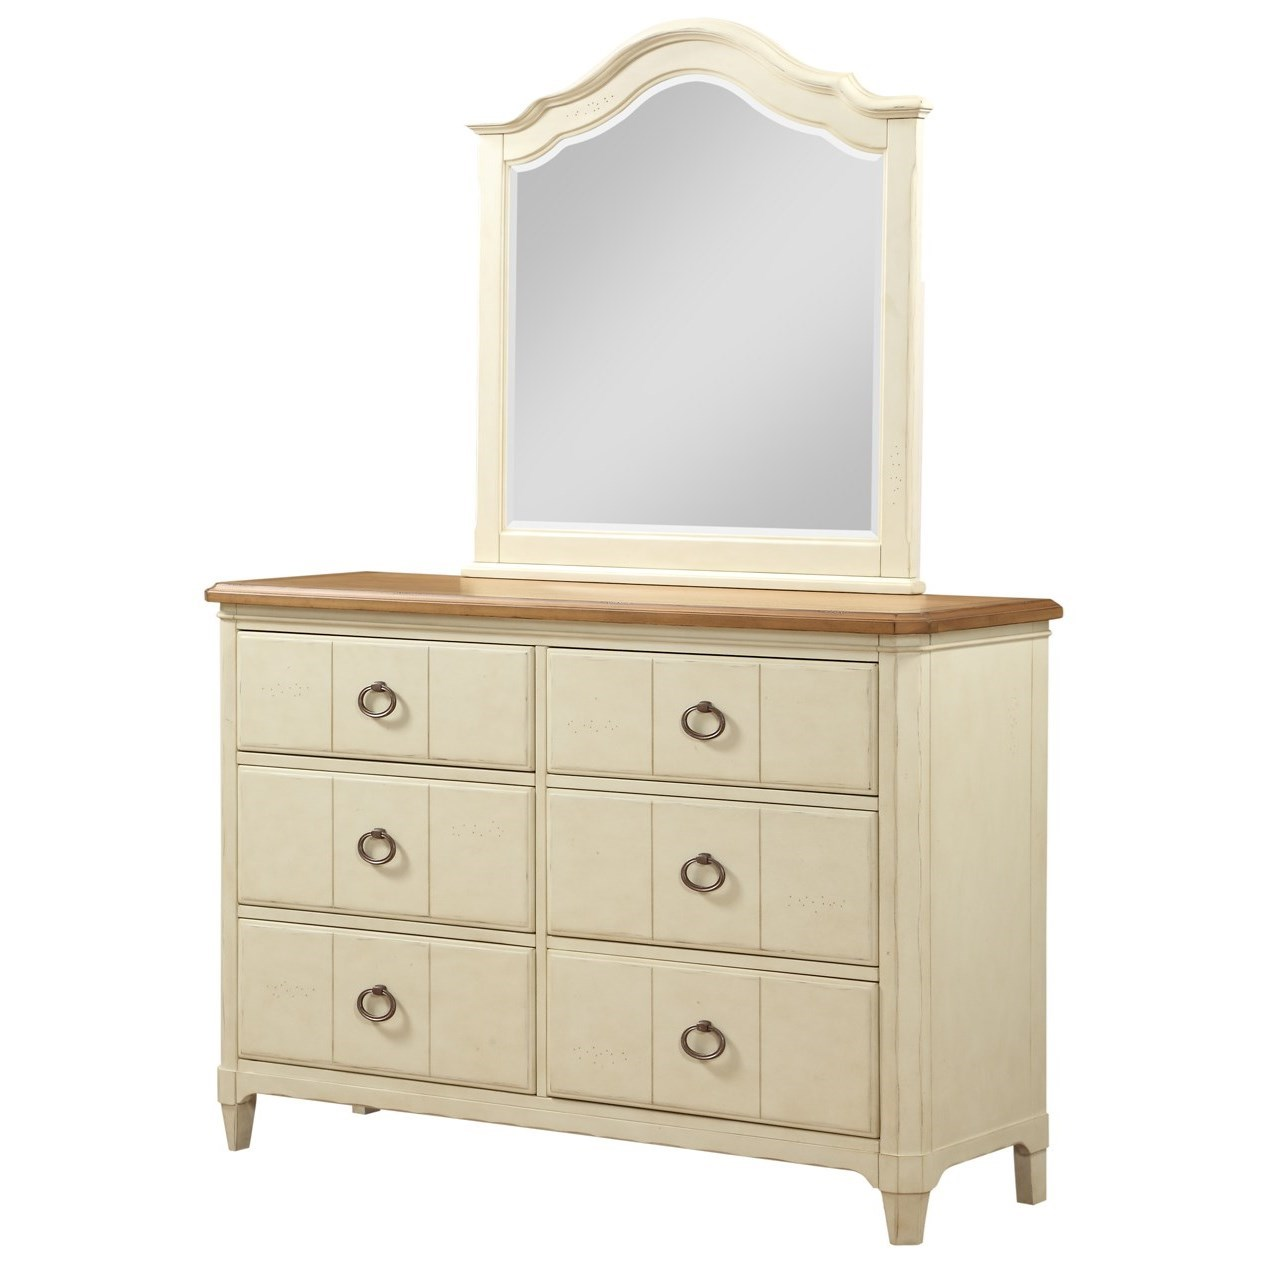 Millbrook Dresser and Mirror Set by Panama Jack by Palmetto Home at Baer's Furniture